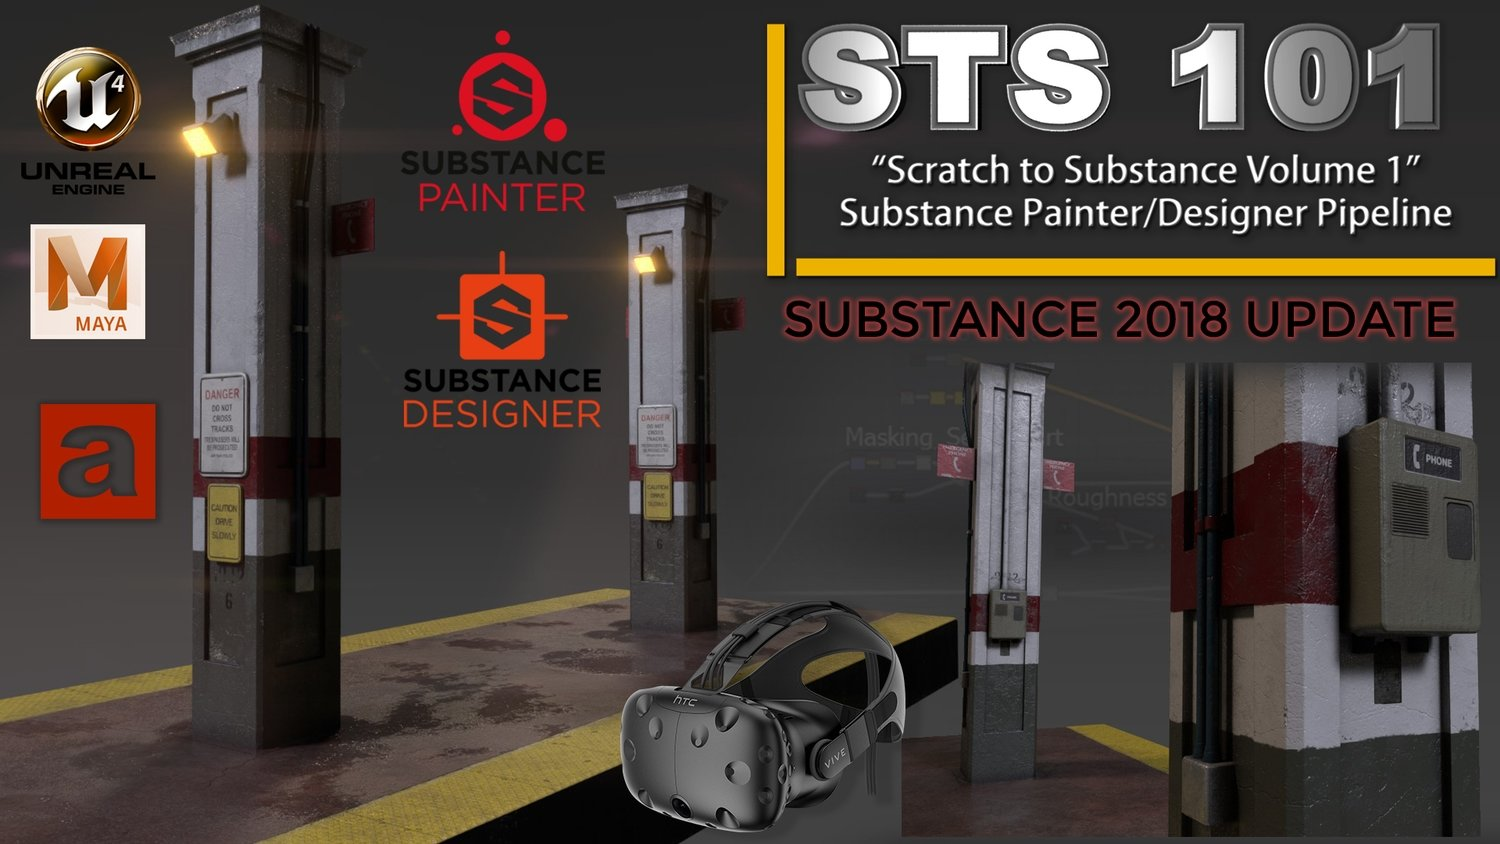 Scratch to Substance V1: Substance Painter/Designer